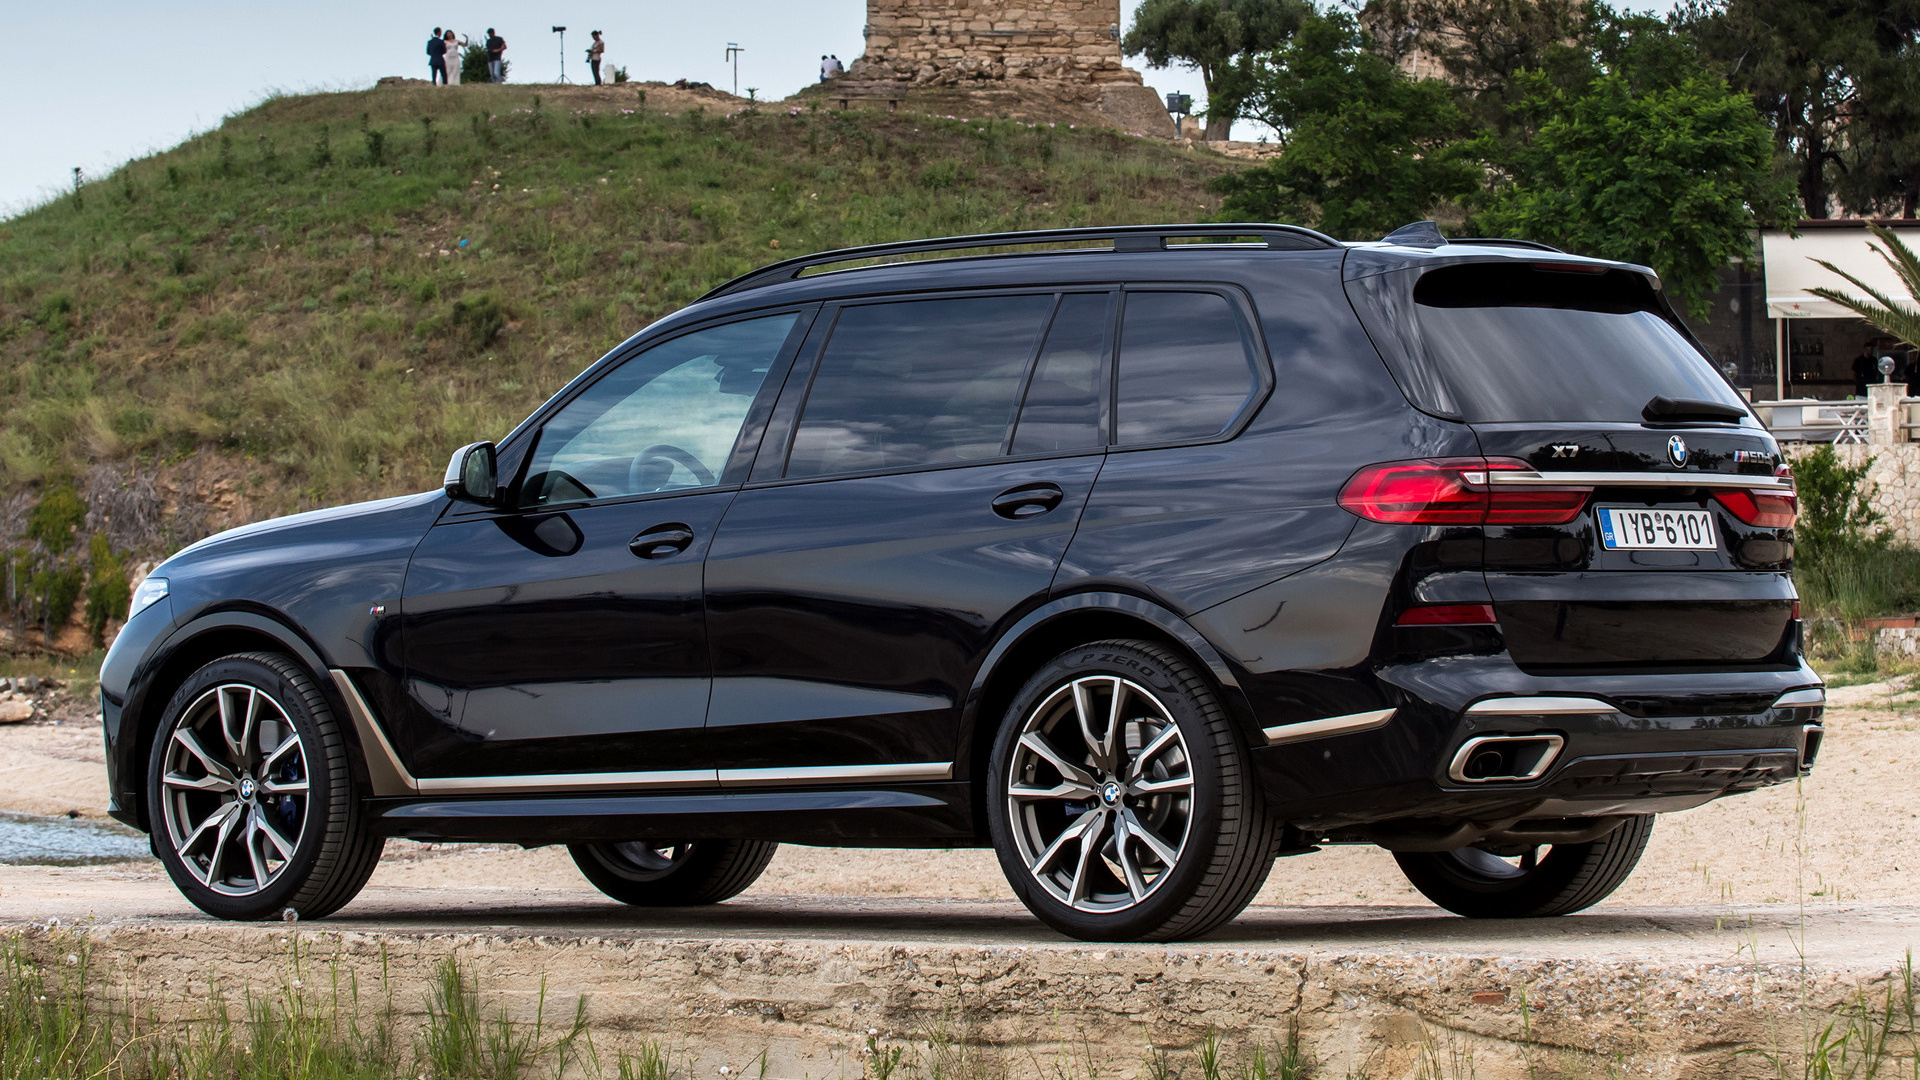 2019 Bmw X7 M50d Wallpapers And Hd Images Car Pixel